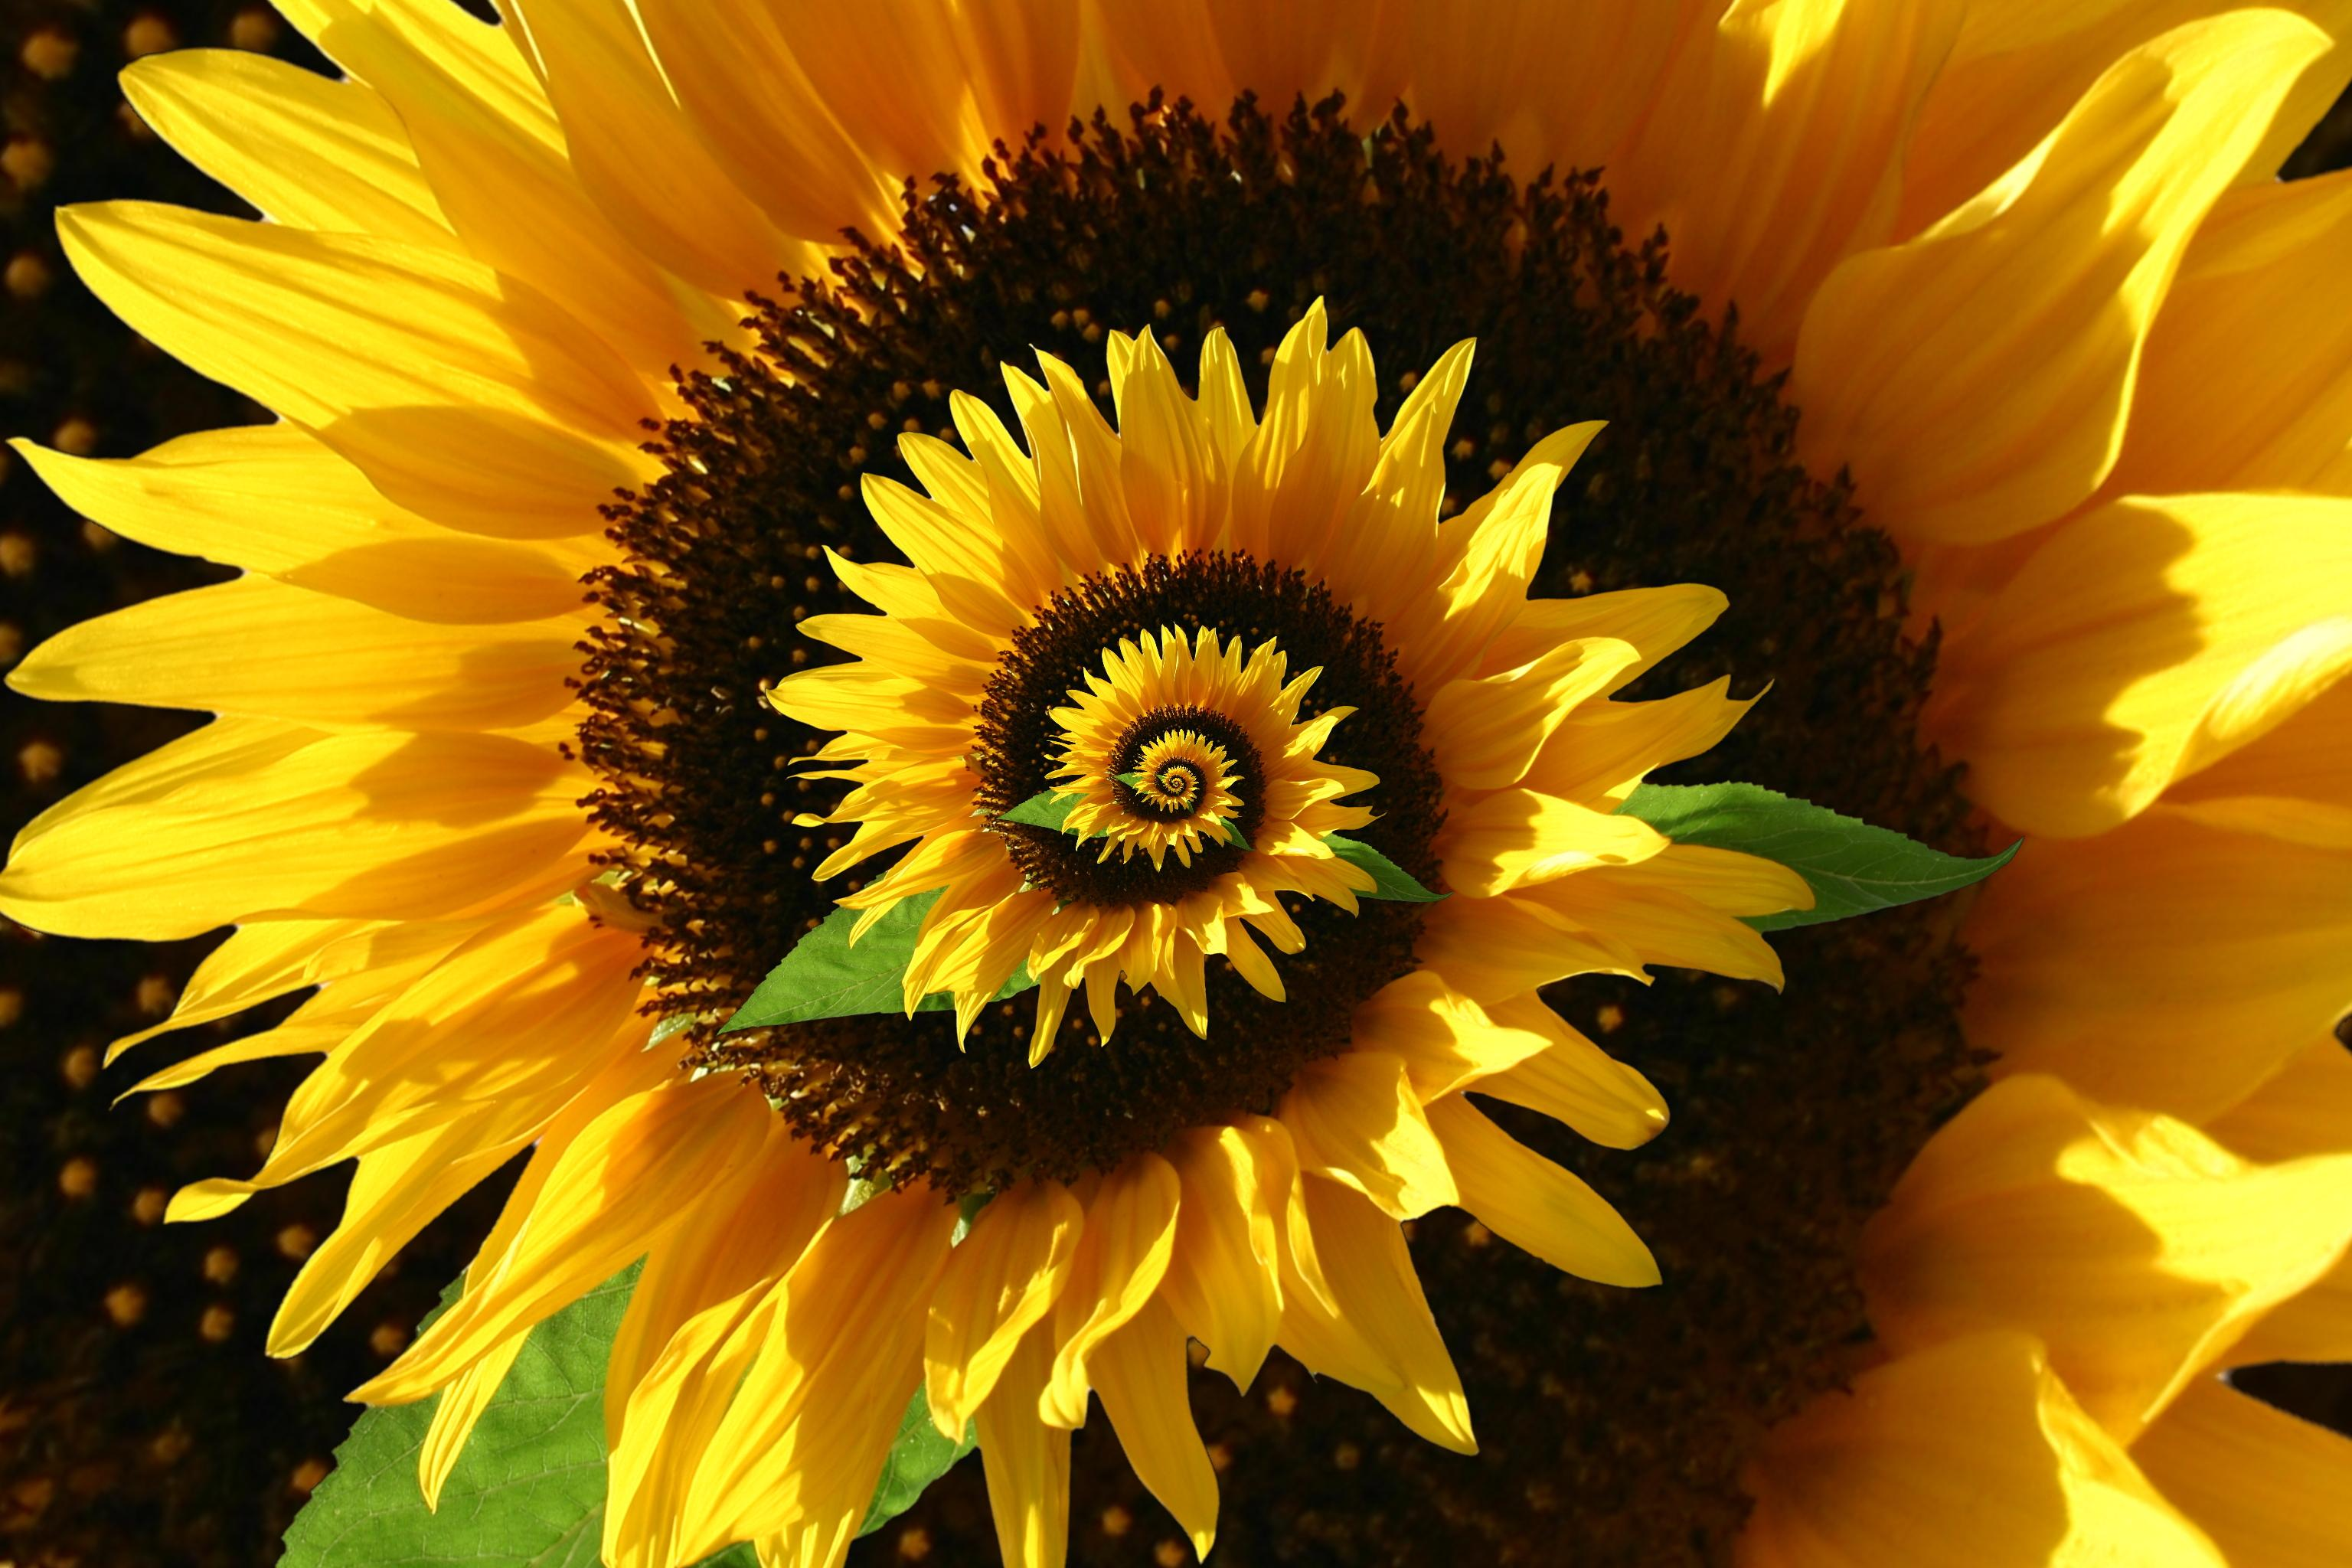 sun flowers and flower - photo #12